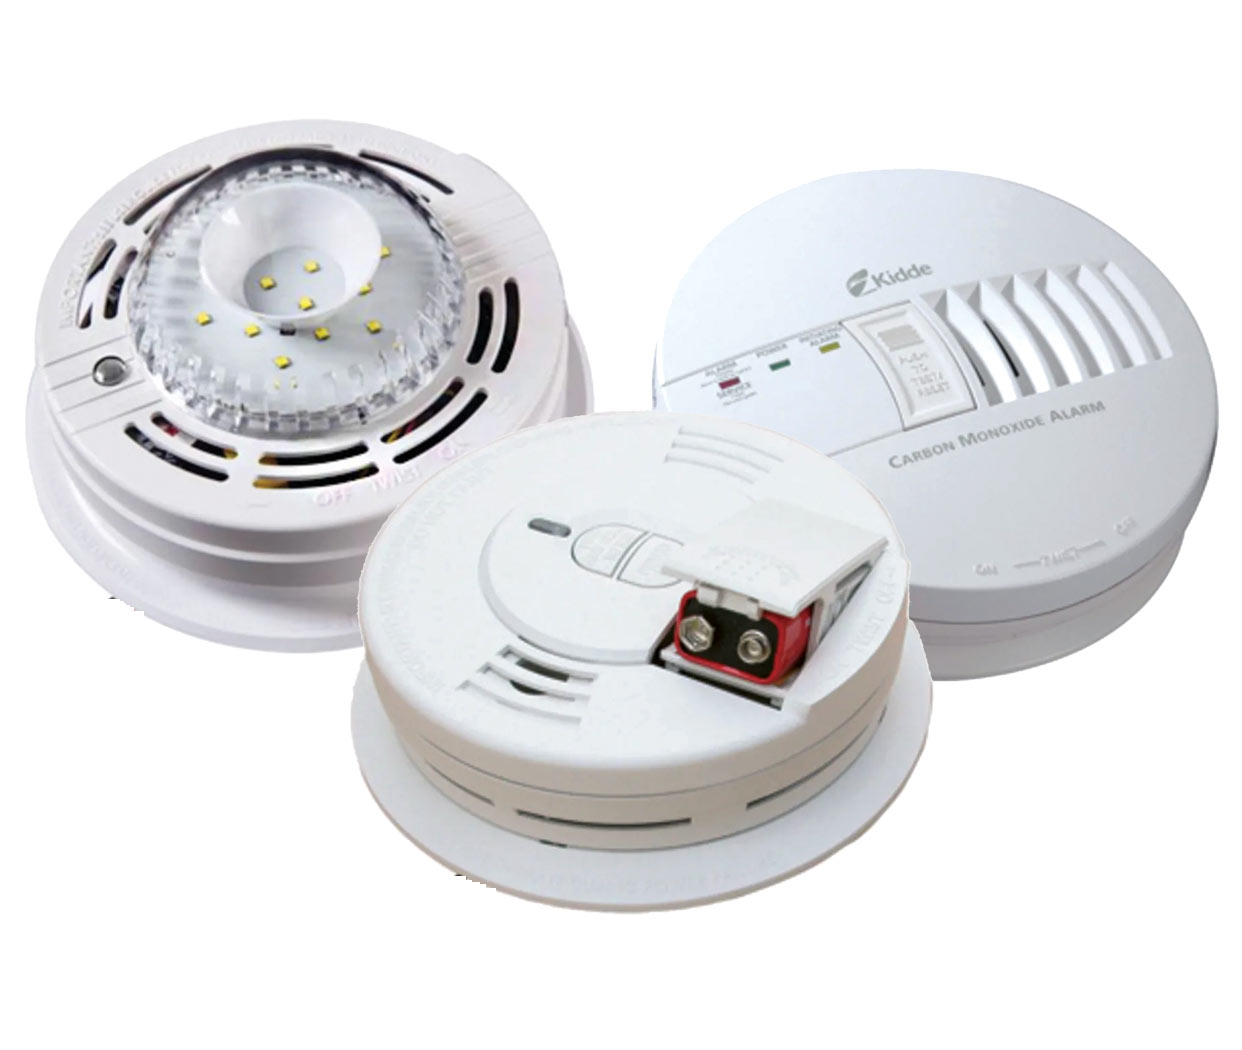 Kidde Carbon Monoxide and Smoke Alarms with Strobe Light Price: $189.95